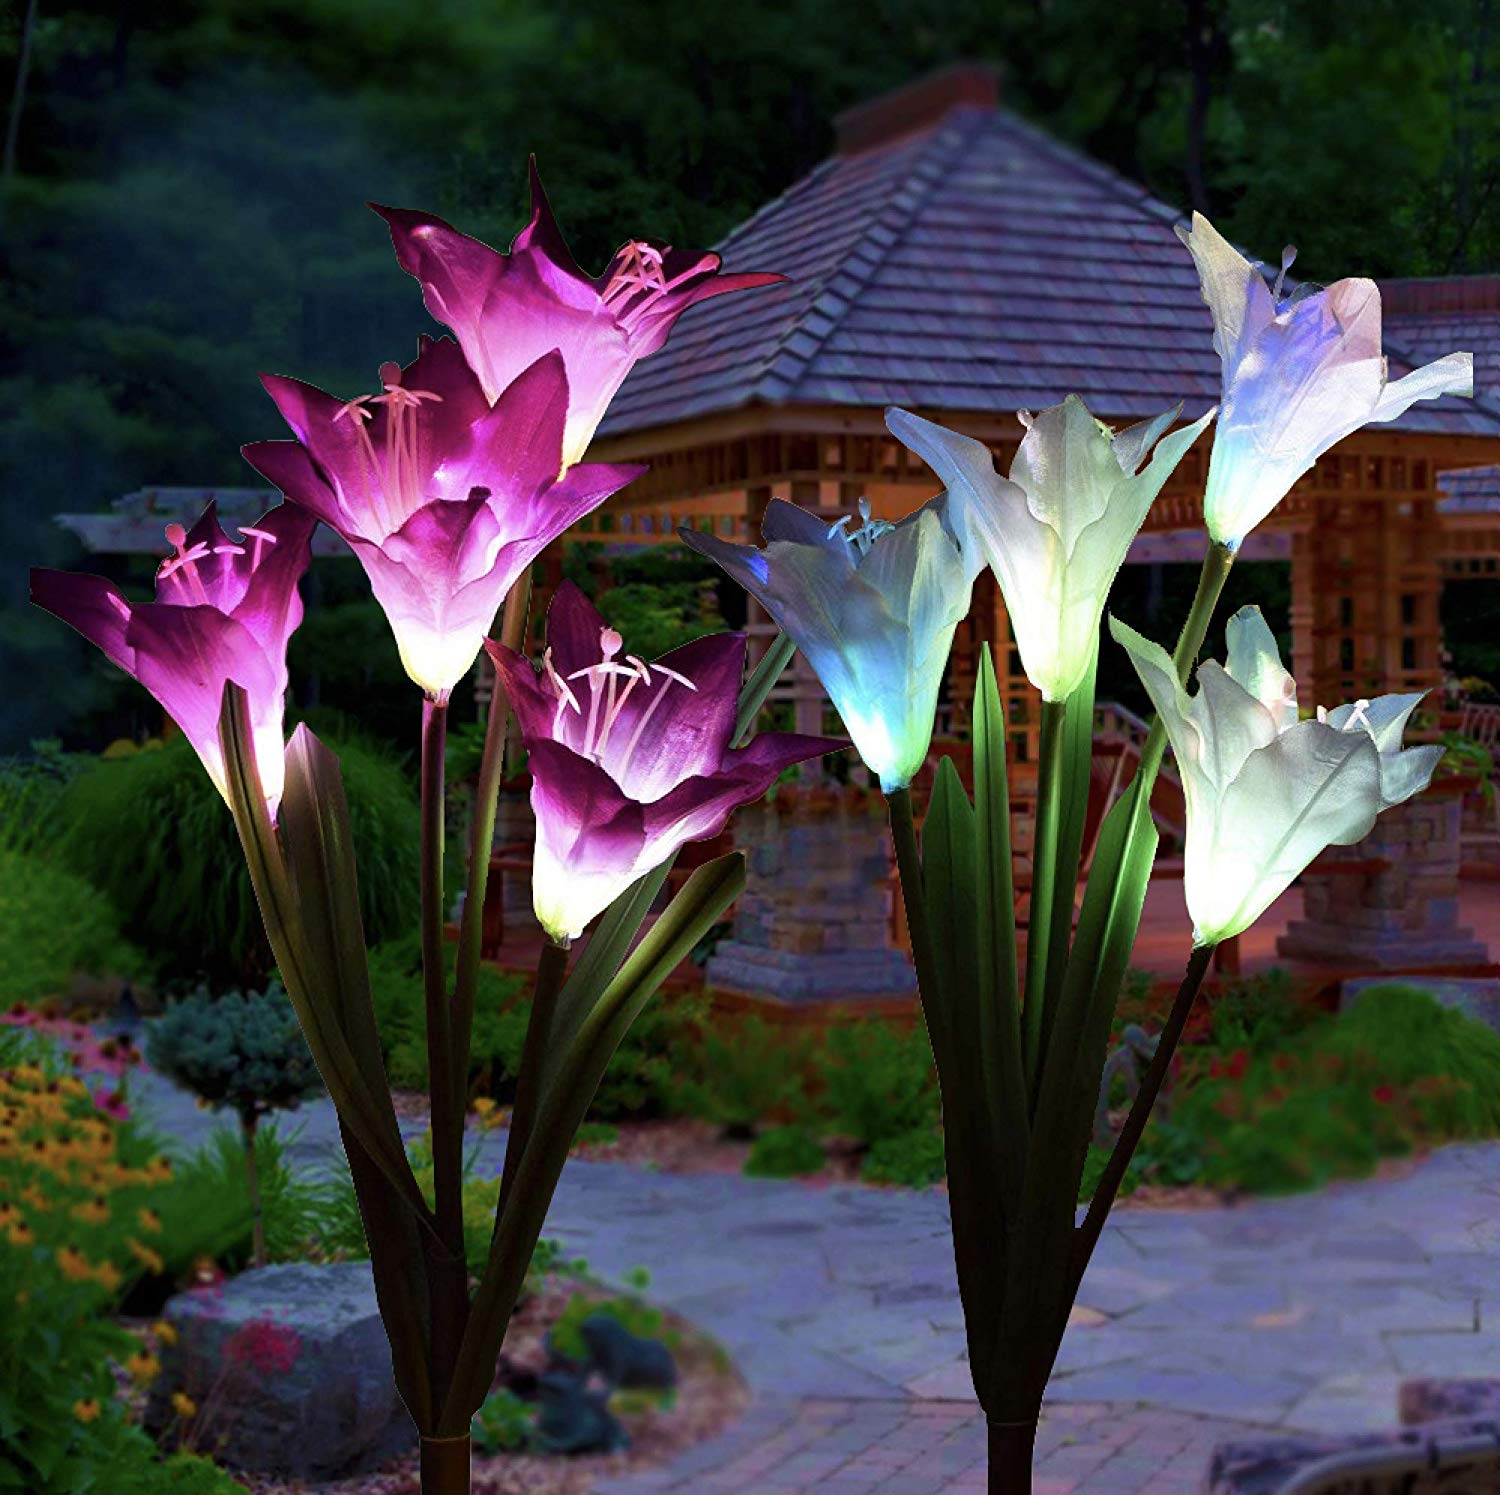 Outdoor Solar Flower Garden Decoration - 2 Pack Modern Life-styles Solar Powered Garden Light Stake With 8 Lily Flowers, Multi Color Changing LED Solar Stake Lights For Garden, Patio, Backyard